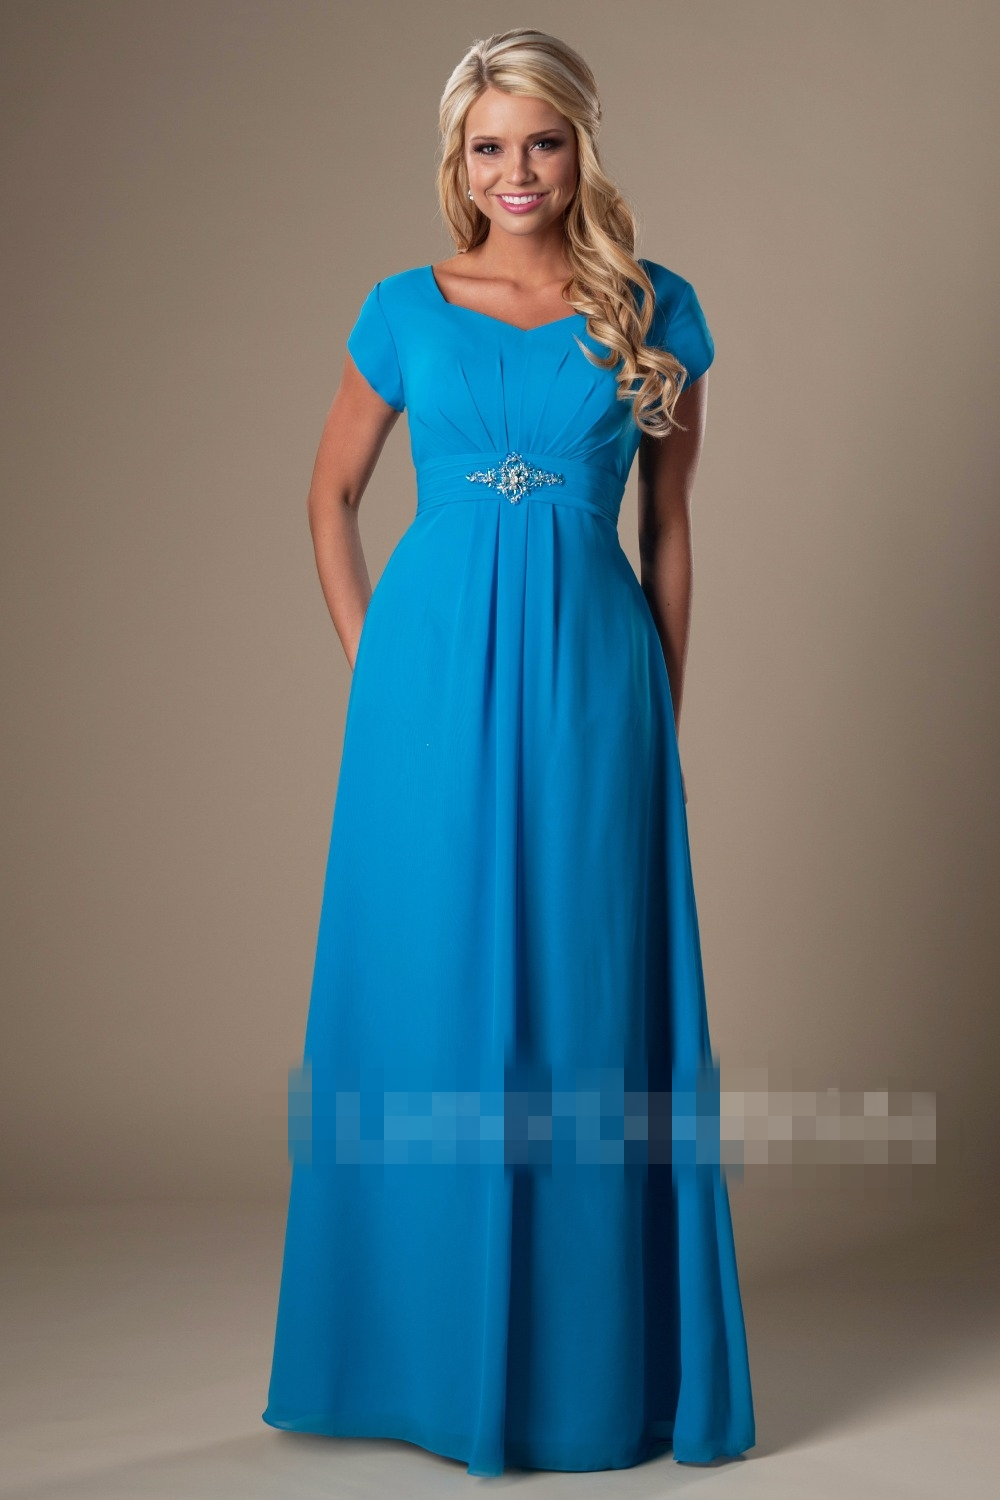 Simple Blue Chiffon Beach Modest Bridesmaid Dresses With Sleeves ...